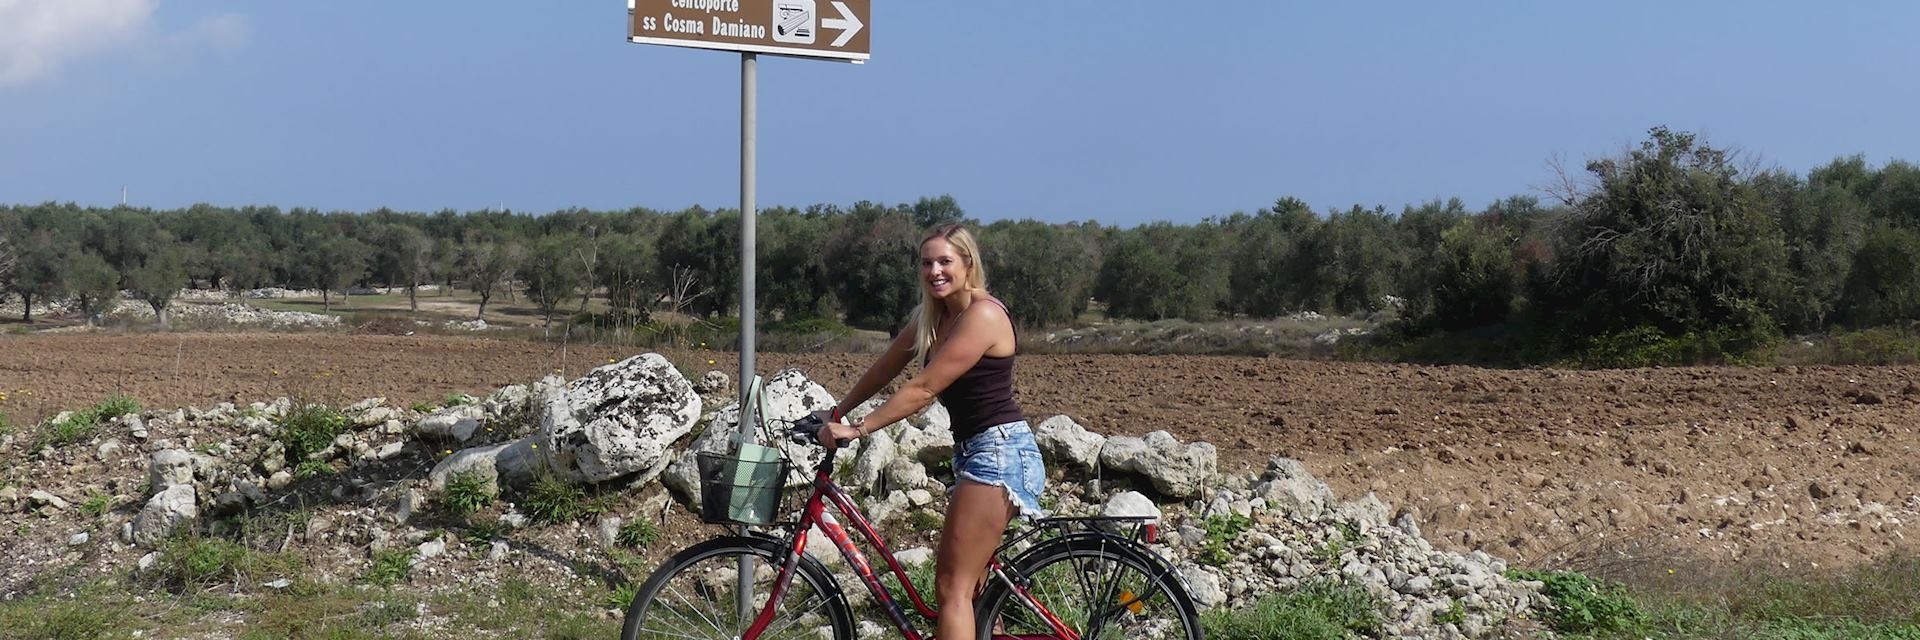 Layla on a cycle tour in Otranto